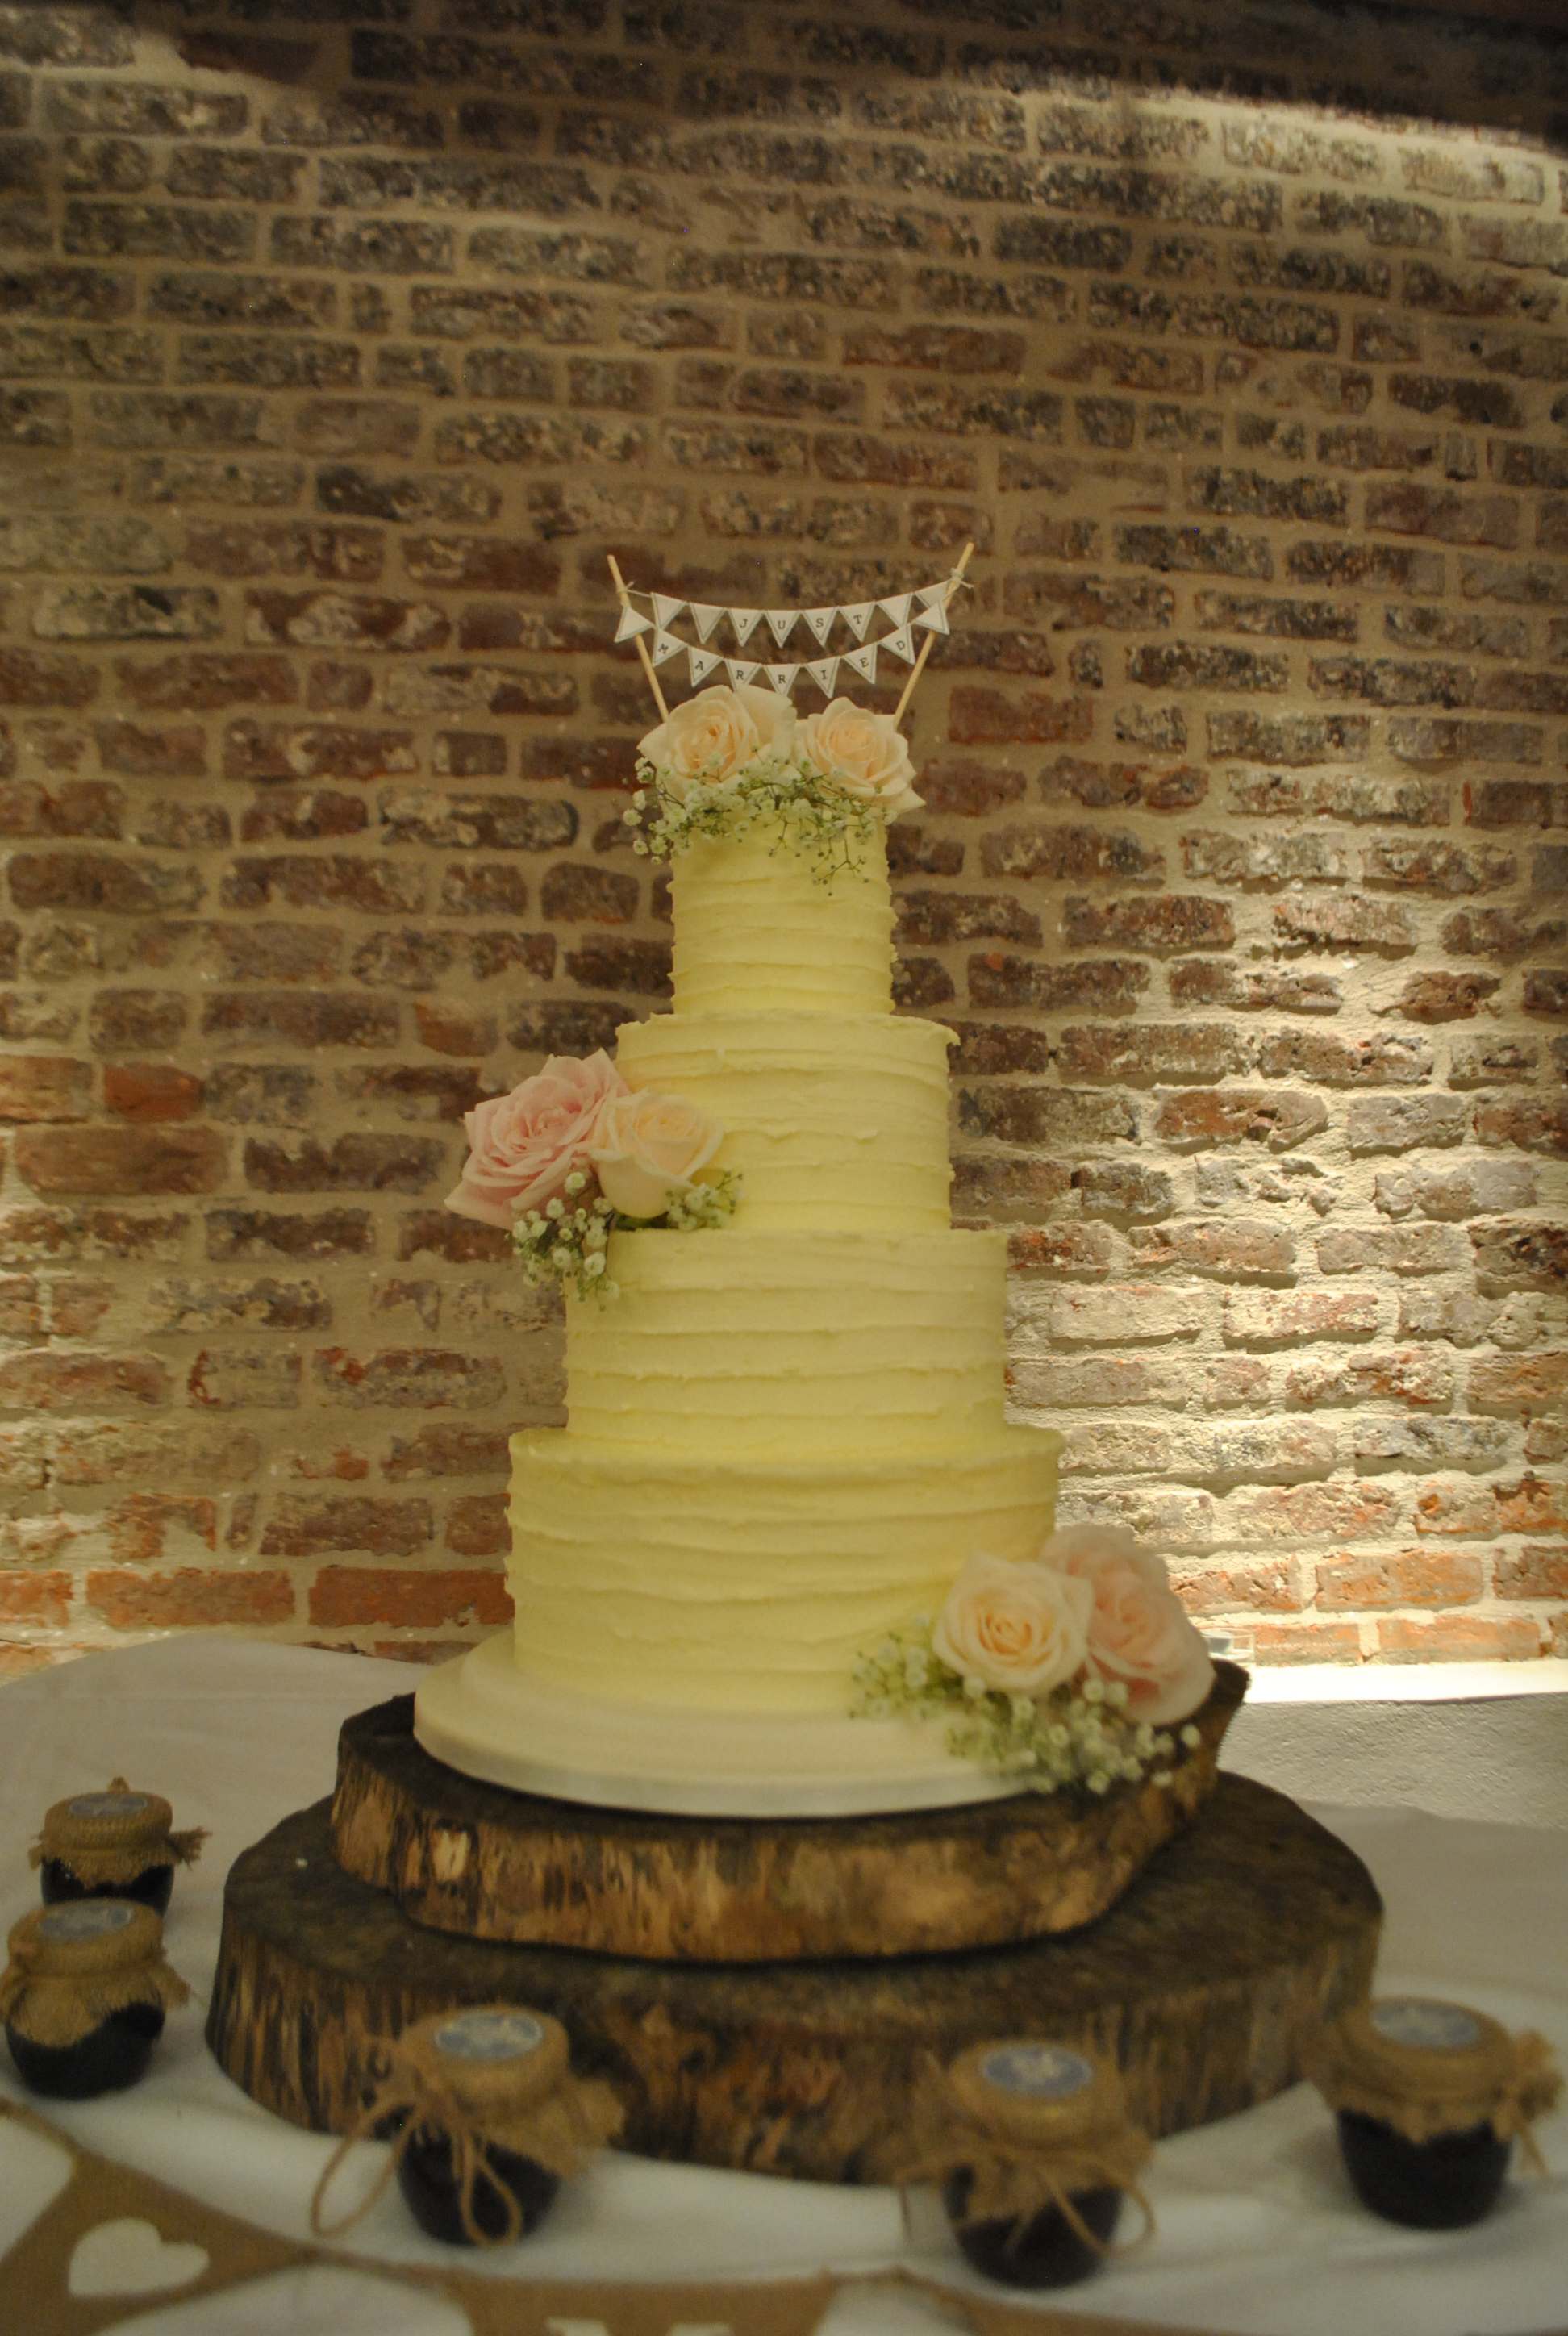 Wedding Cakes Custom Cakes Ireland Award Winning